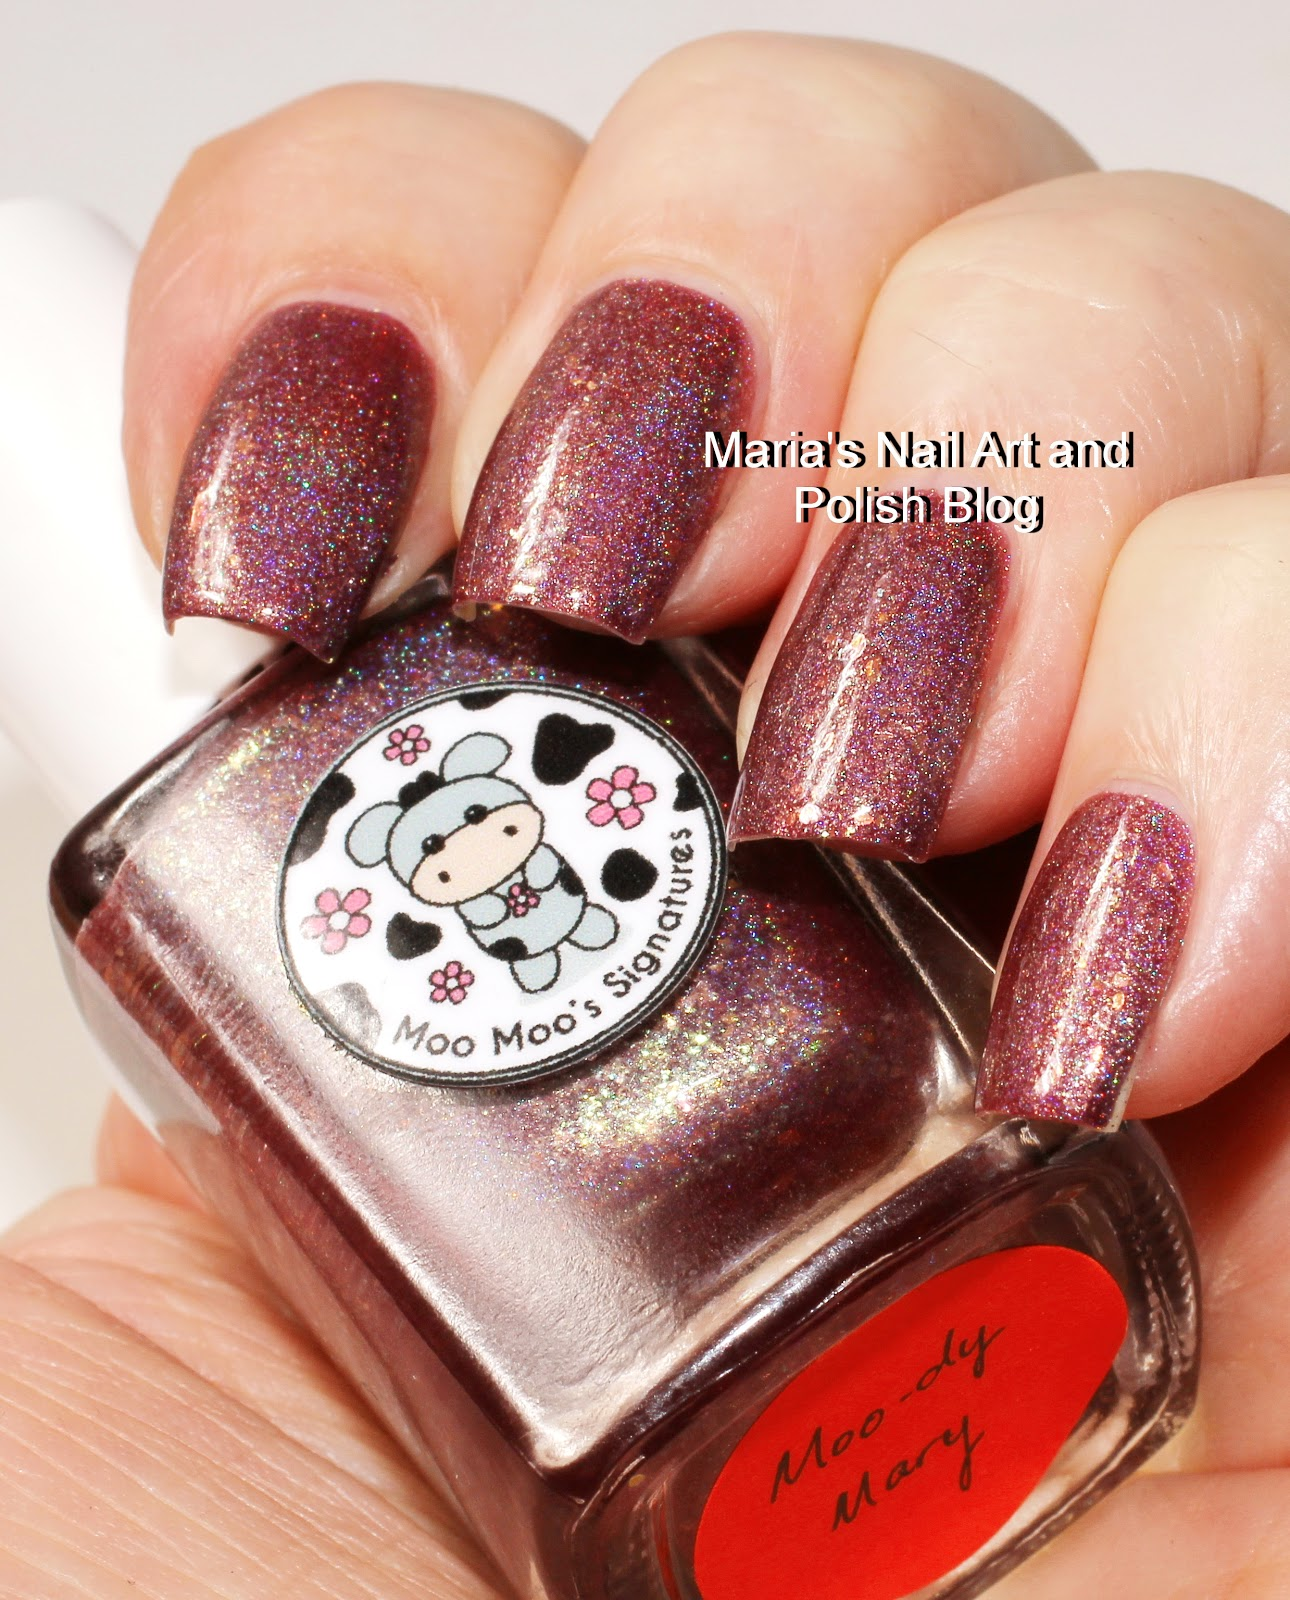 L B K Nail Lacquers Are Unique And Beautiful Giveaway: Marias Nail Art And Polish Blog: Moo Moo Signatures Moo-dy